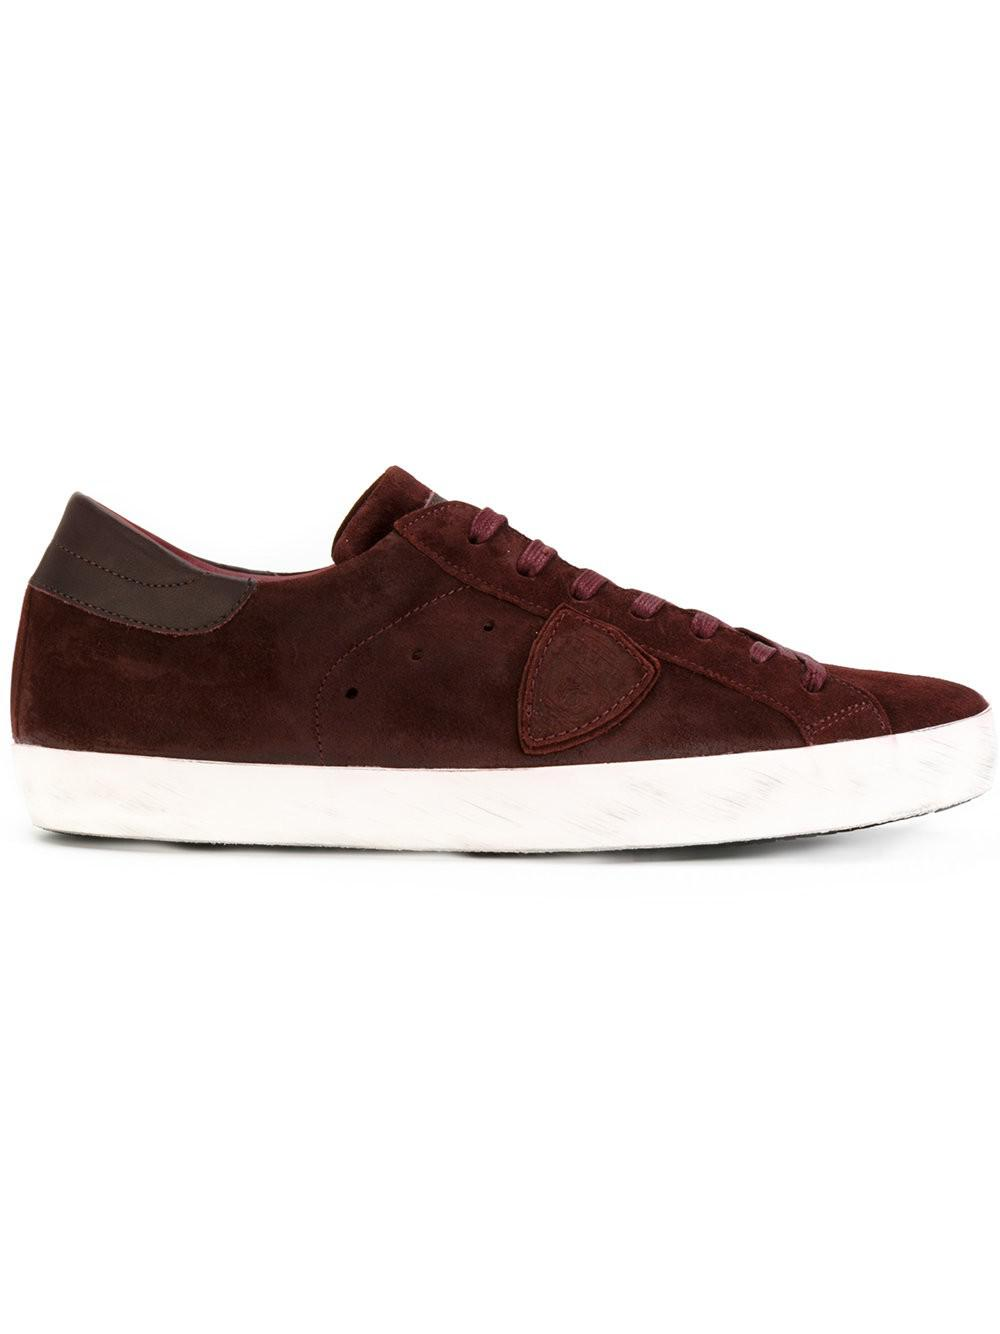 lyst philippe model lace up sneakers for men. Black Bedroom Furniture Sets. Home Design Ideas